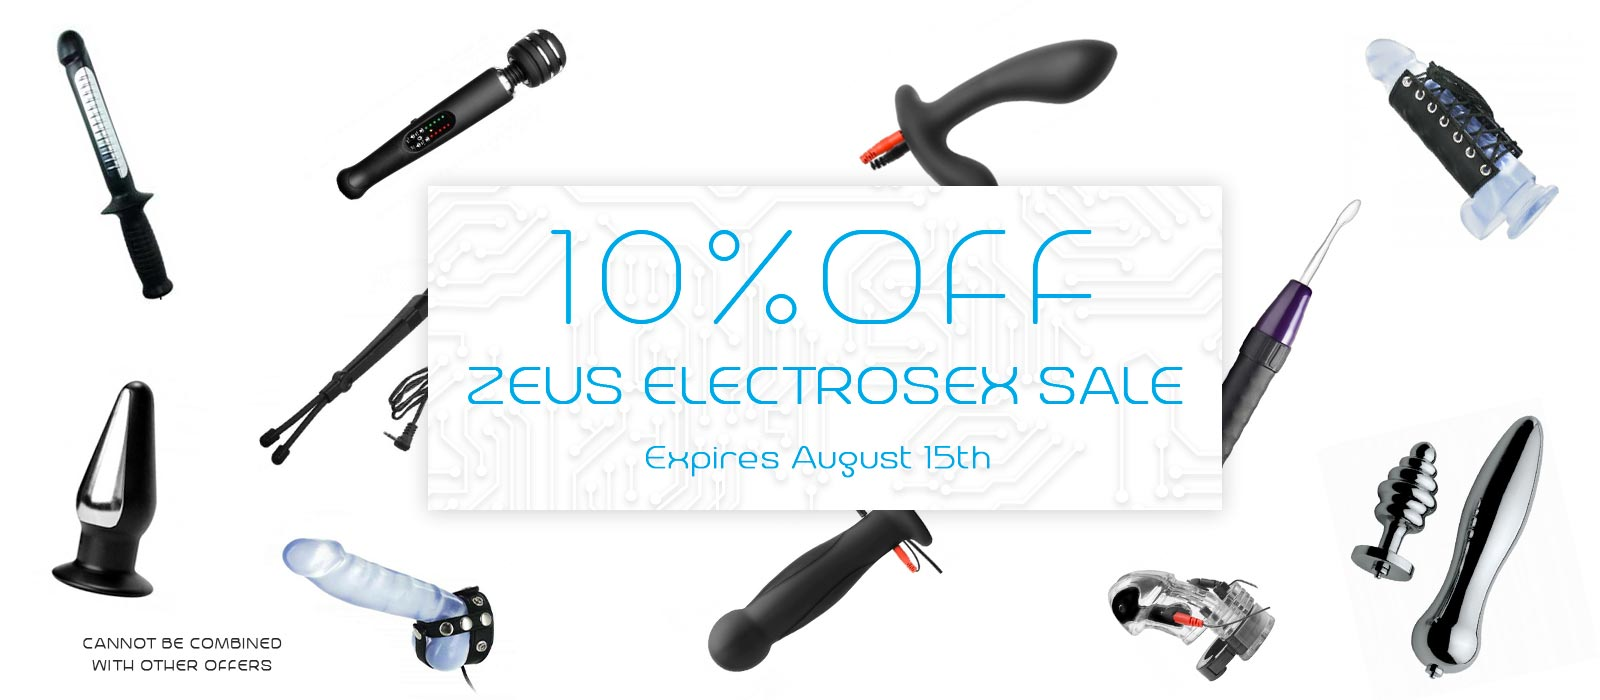 Zeus Electrosex Sale, Save 10% on all Zeus Products